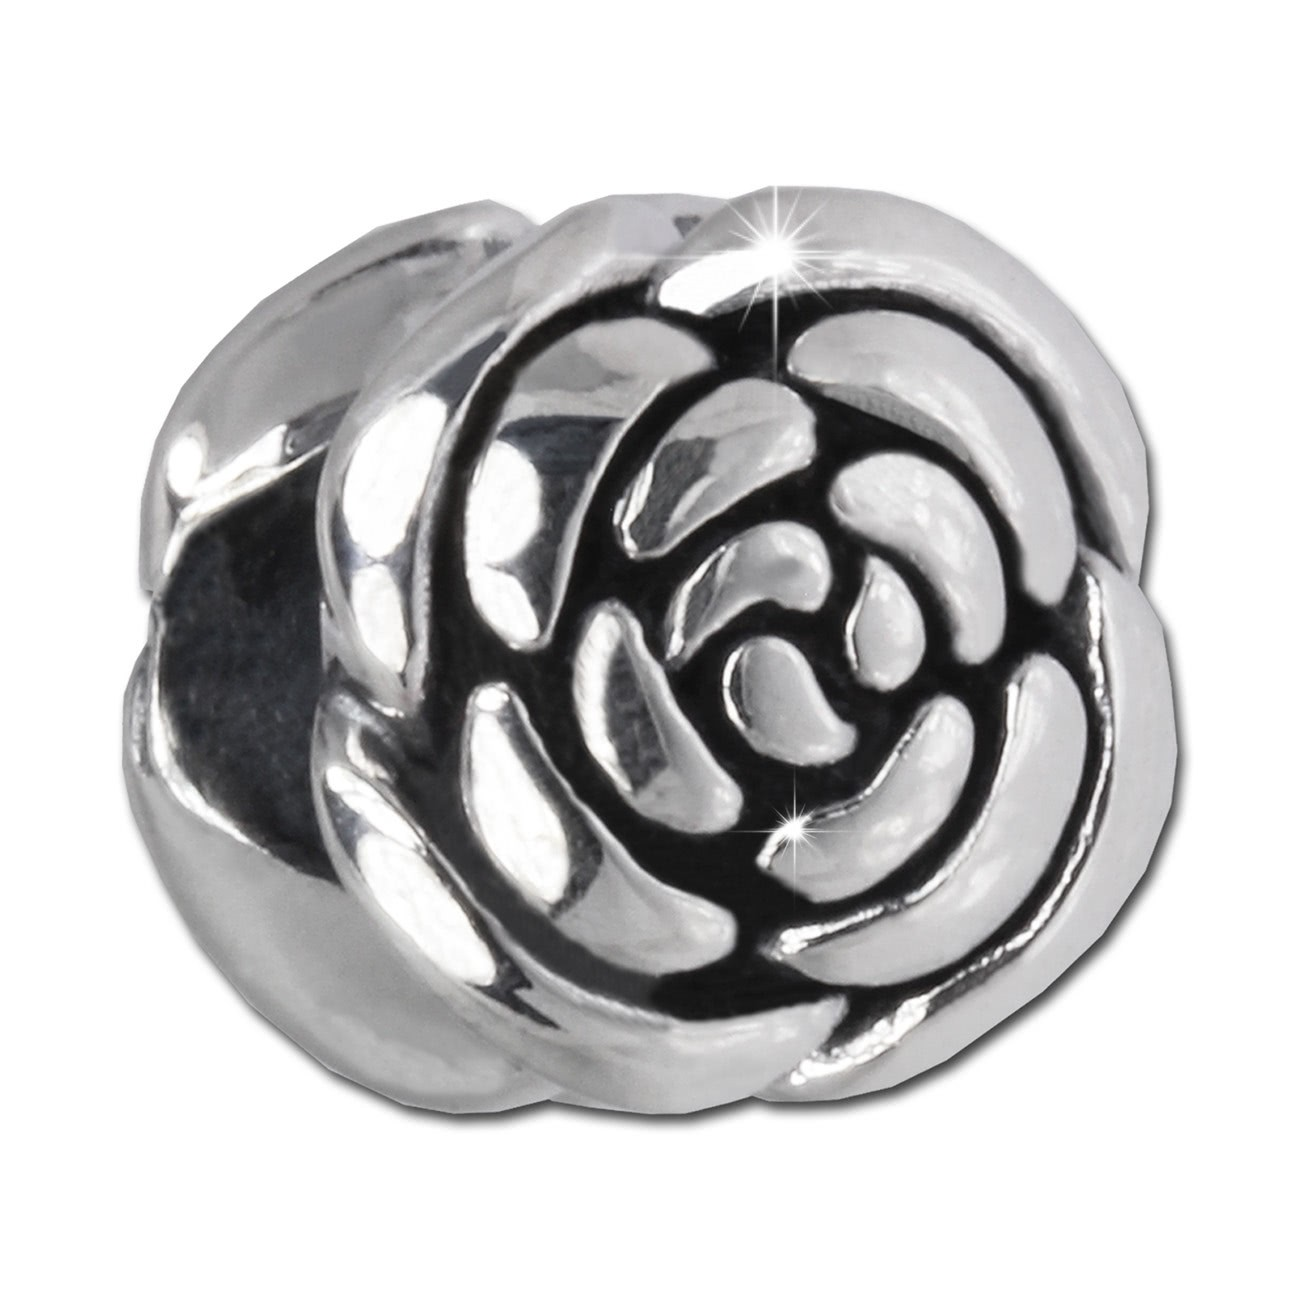 IMPPAC Bead Blume 925 Sterling Silber Armband Beads SBB402